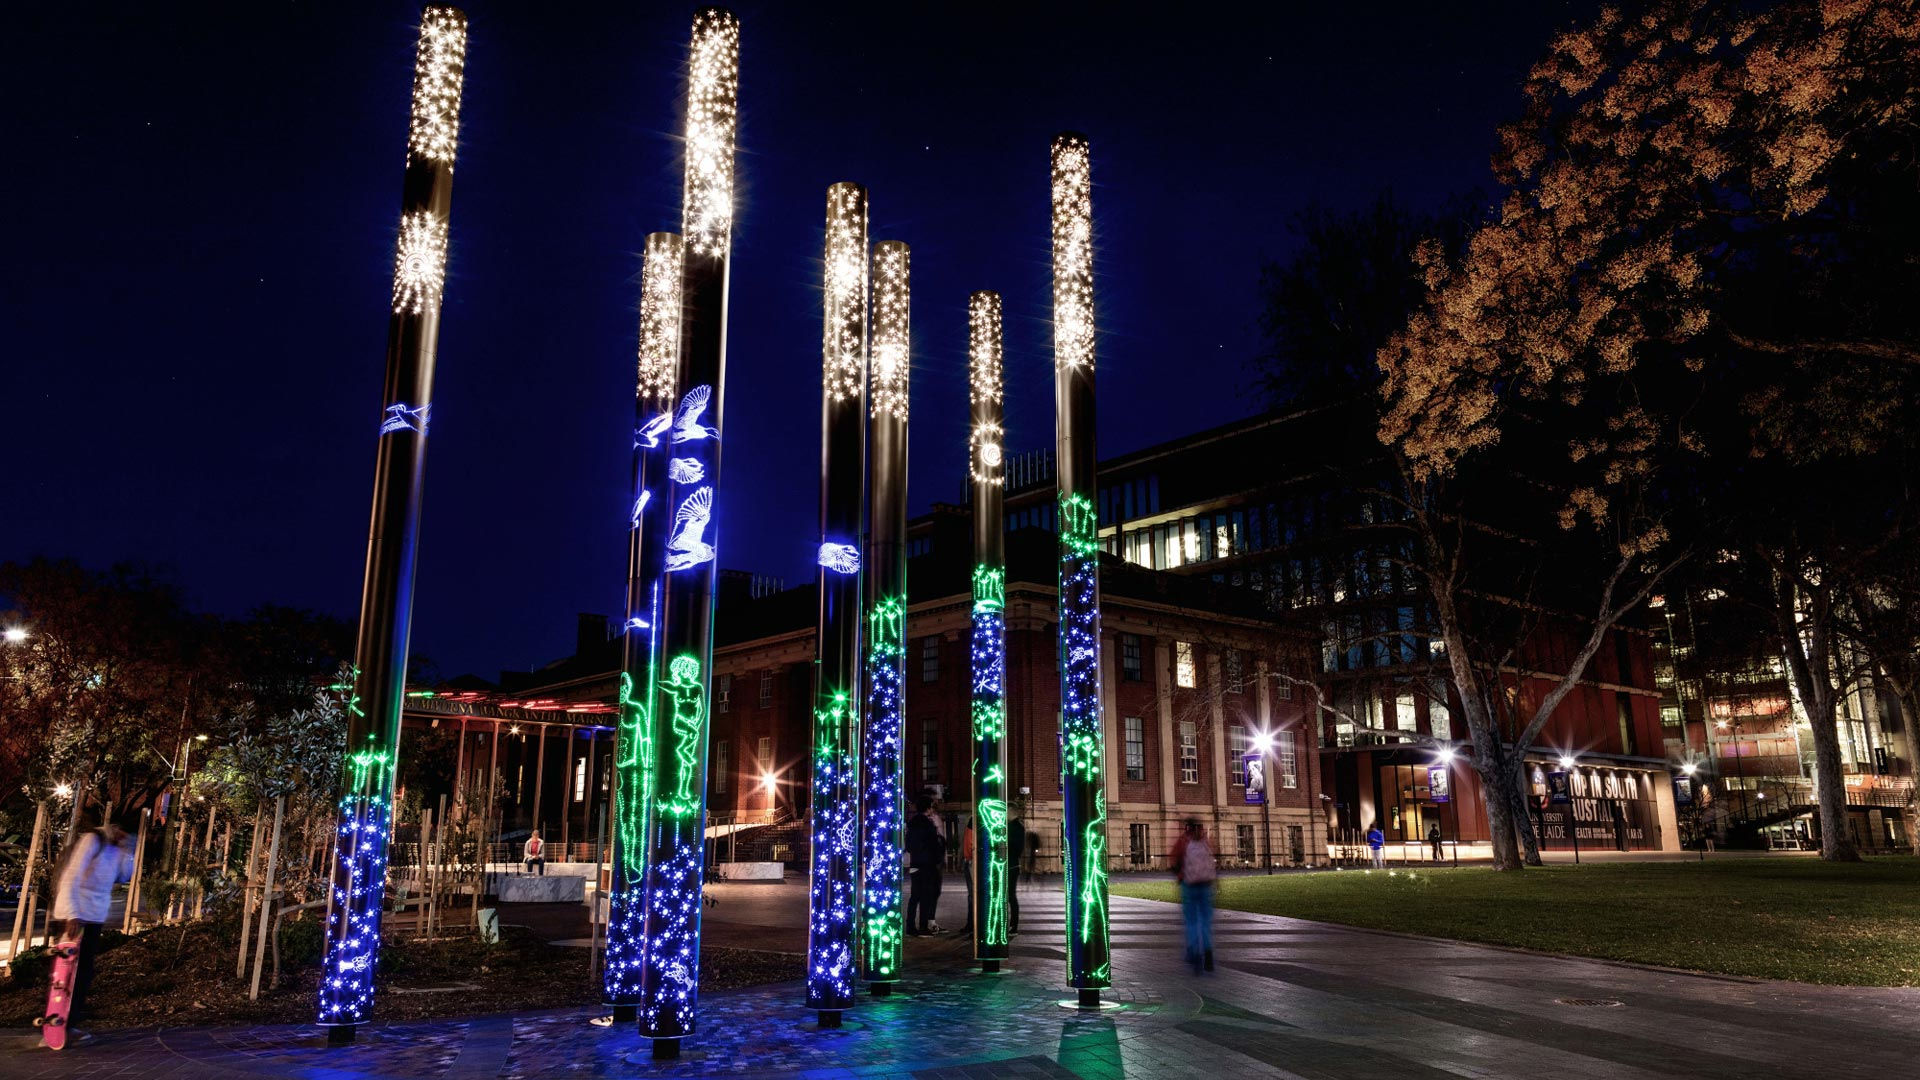 Light display at University of Adelaide